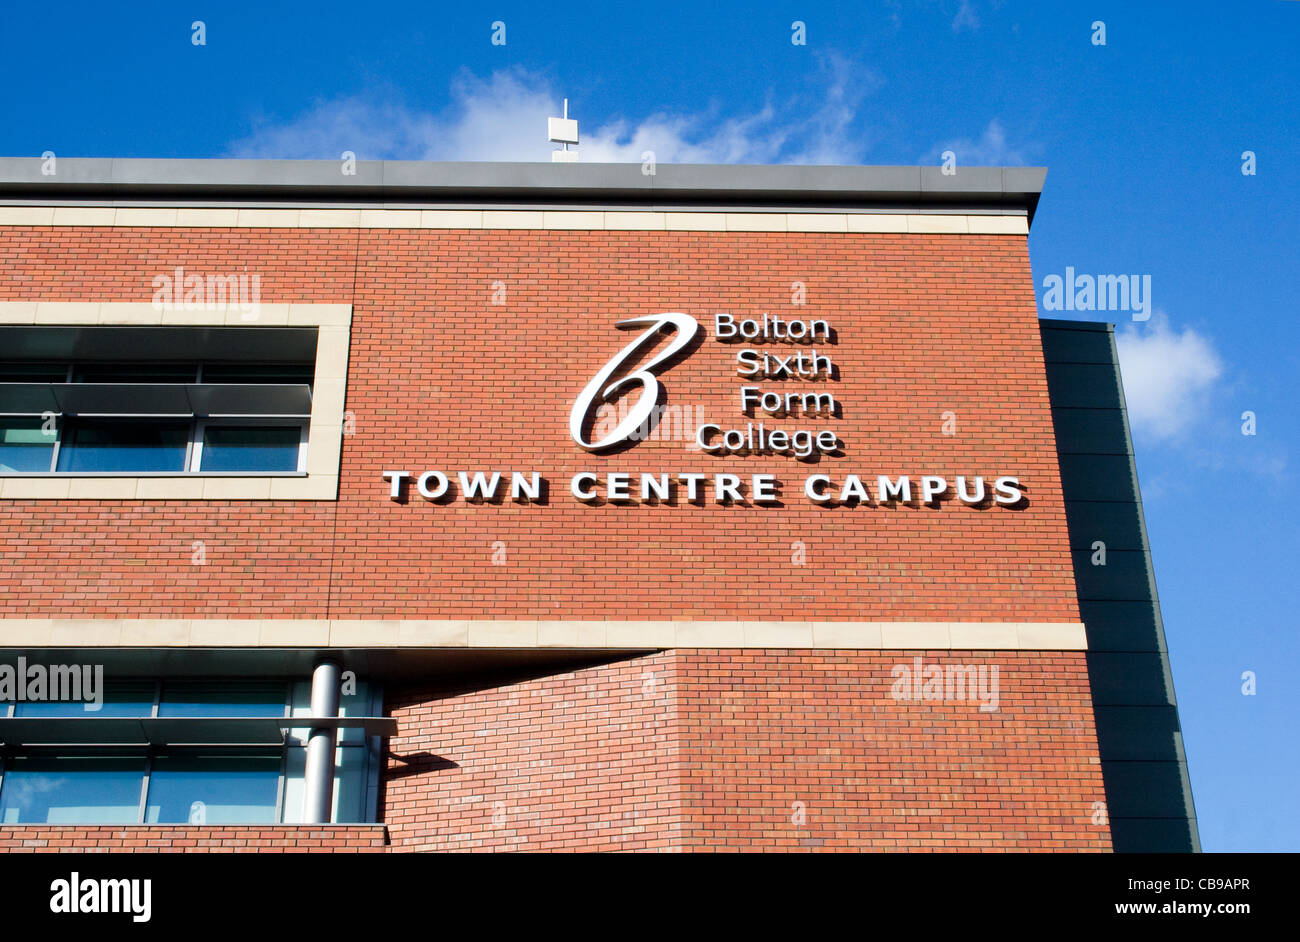 Bolton Sixth Form College, Deane Road, Bolton, Greater Manchester, England, UK - Stock Image